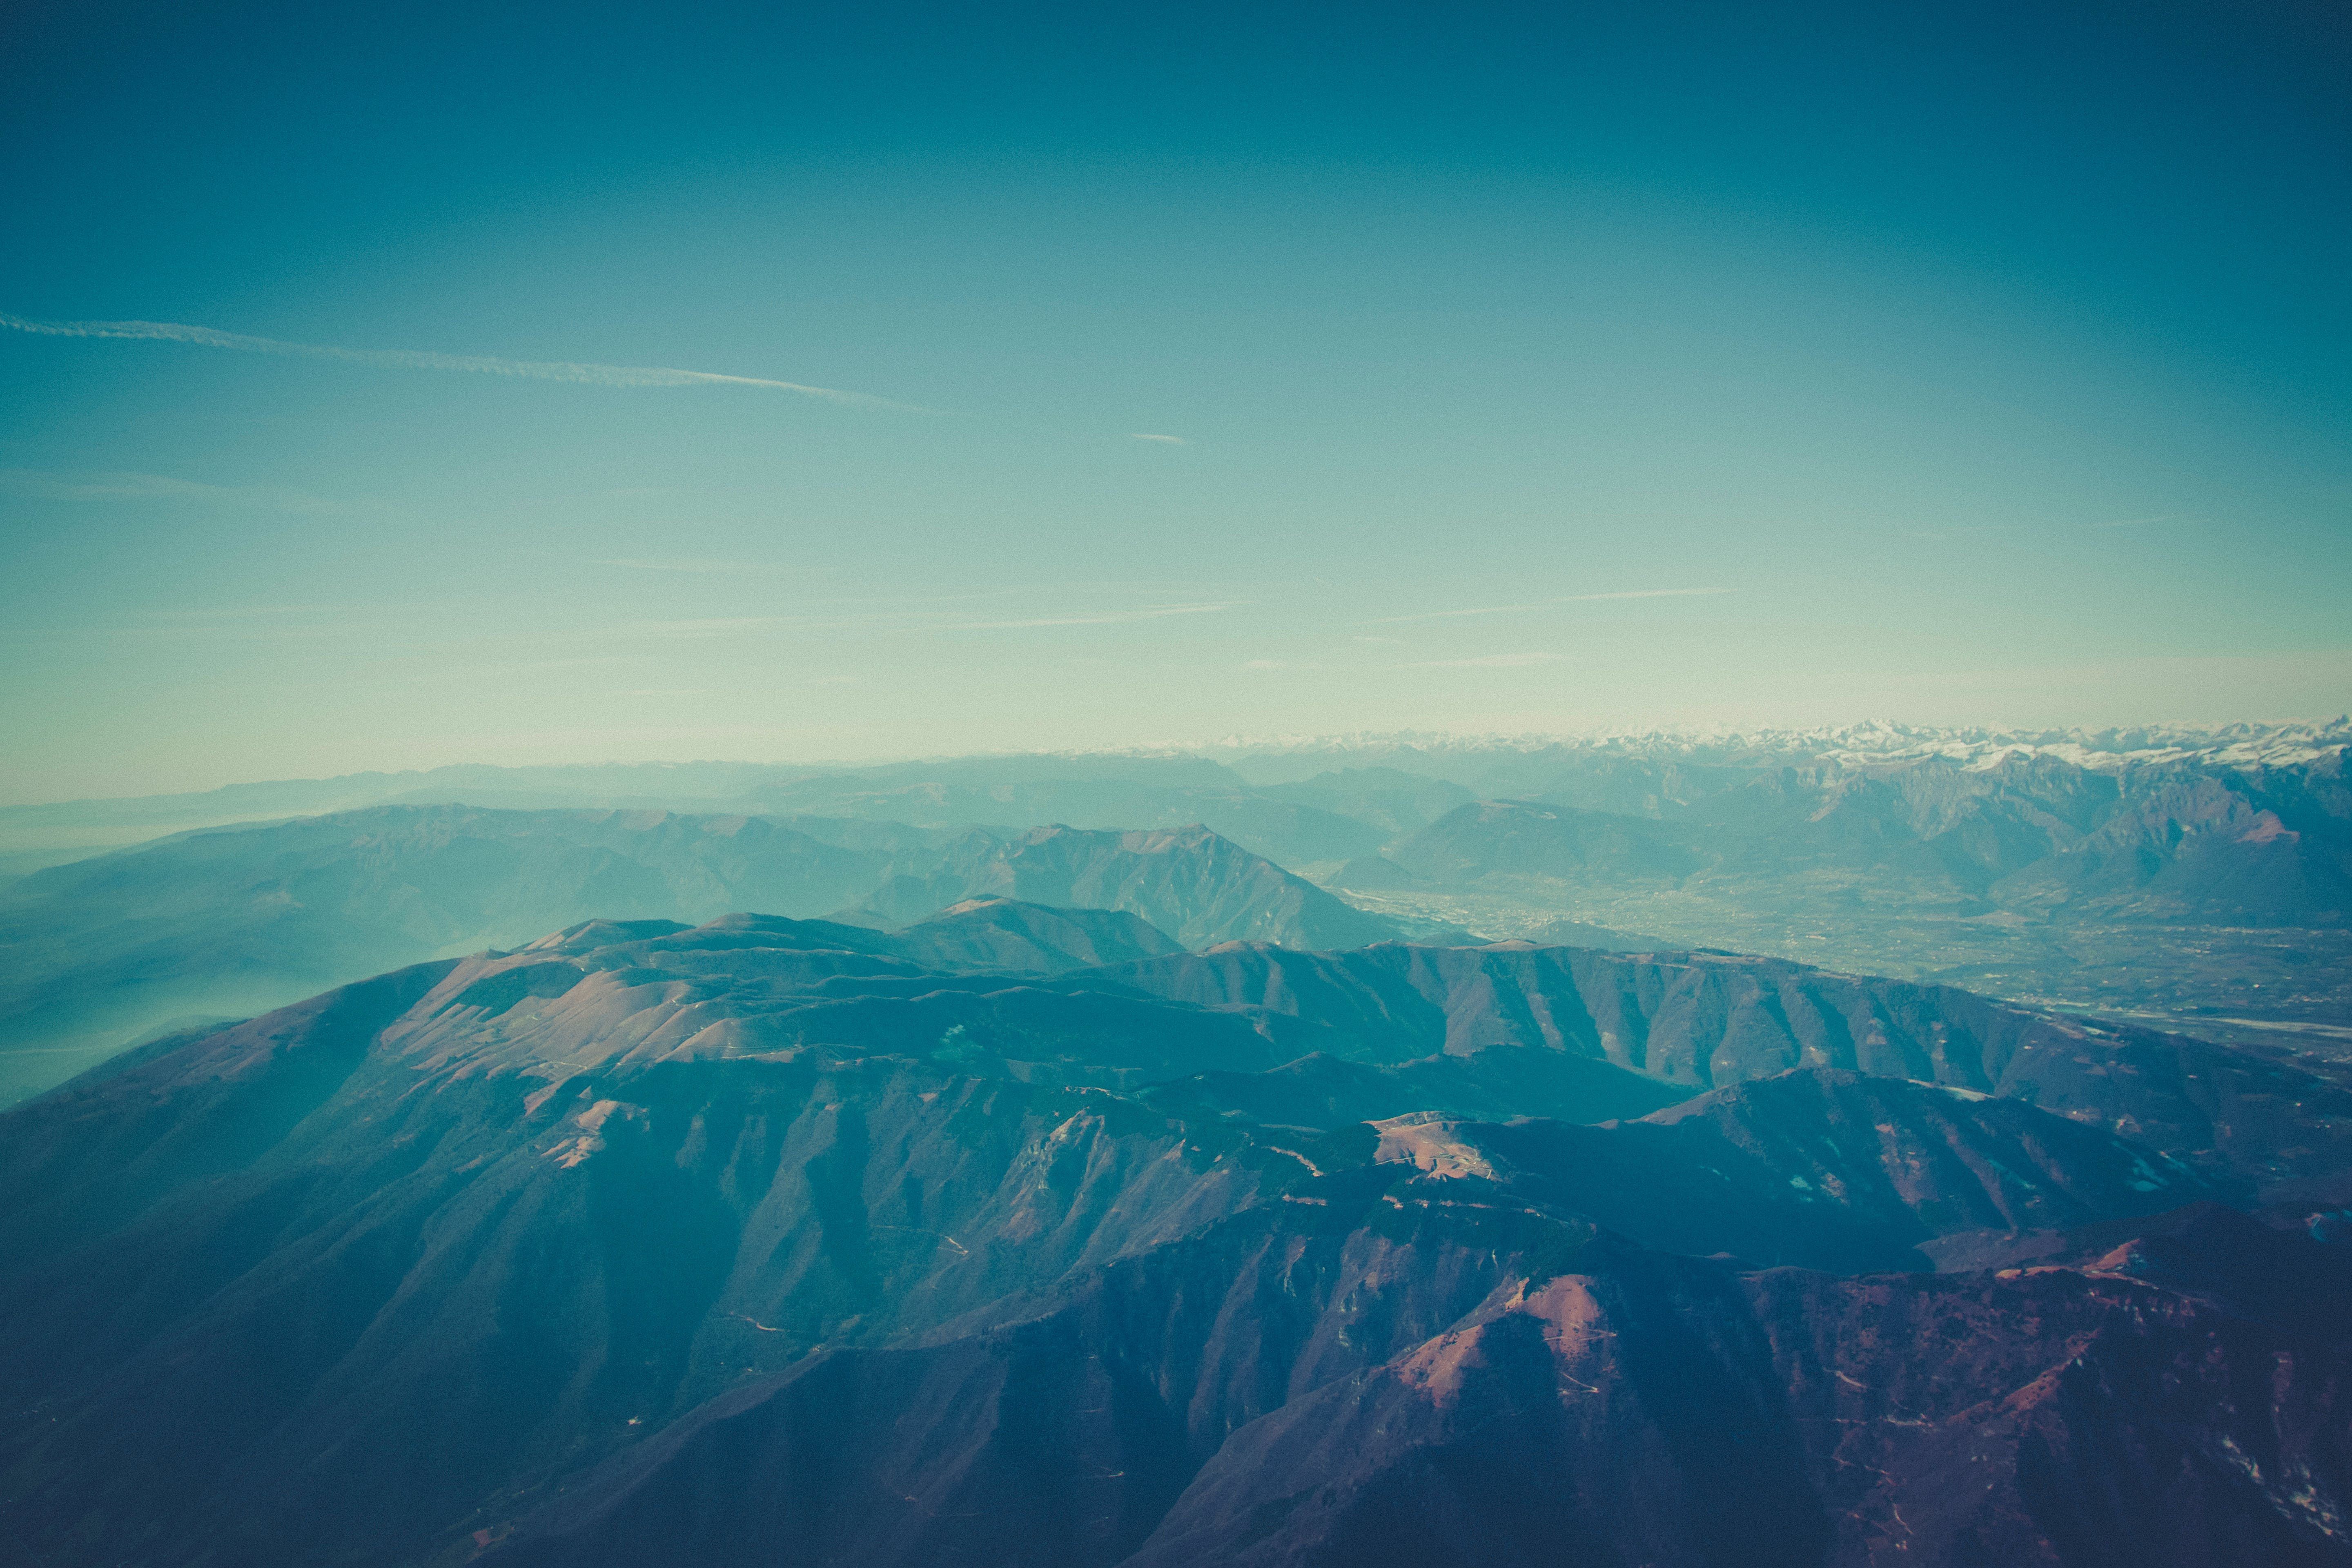 Aerial Photography of Mountain Under Sunny Blue Sky